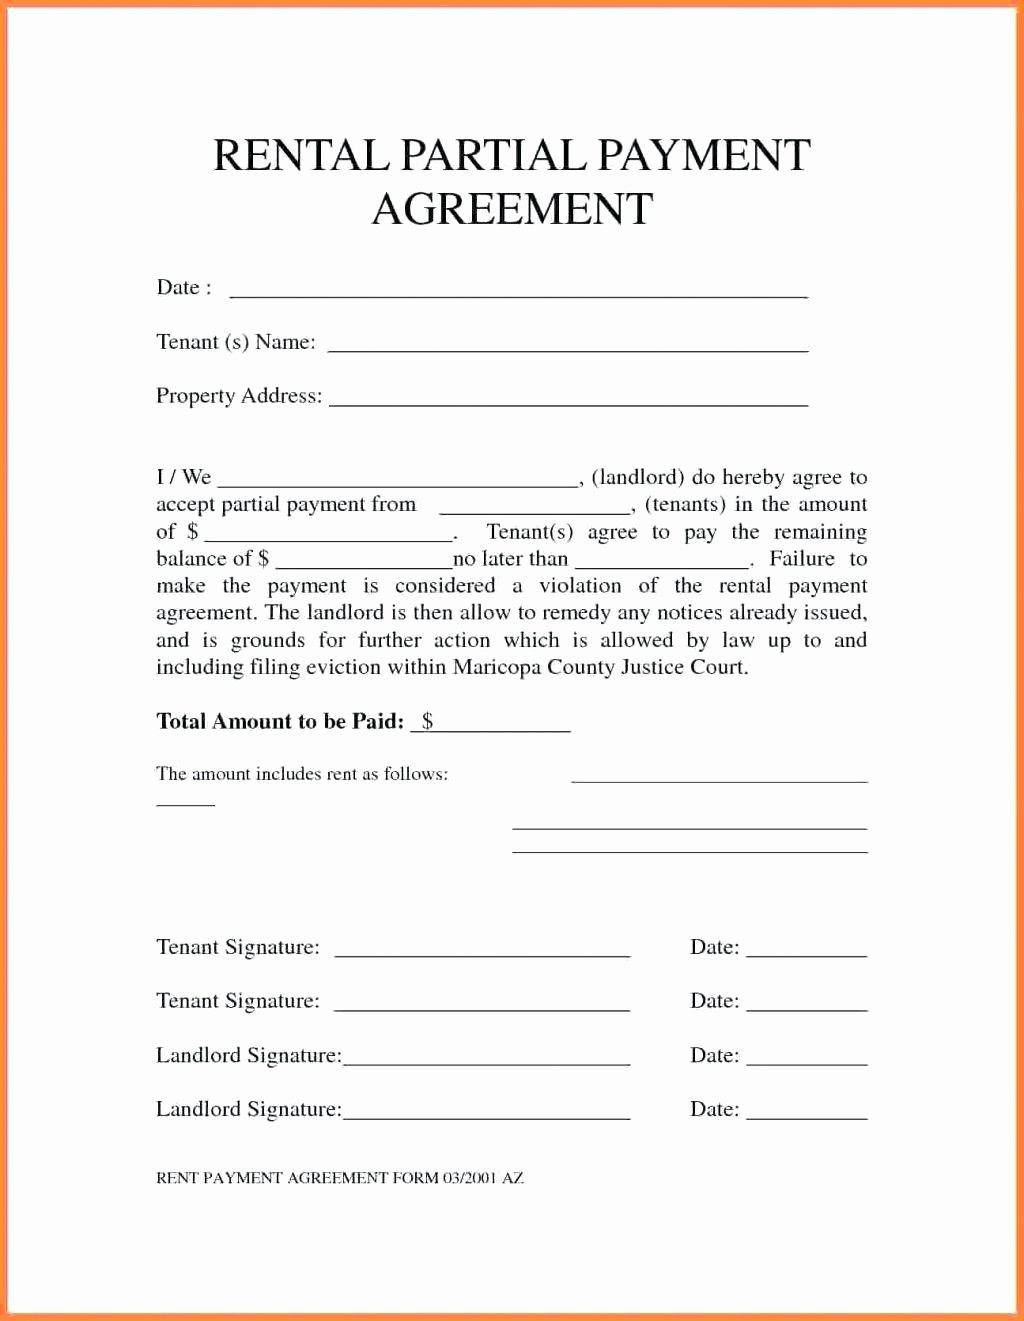 Contract Template Between Two Parties Awesome Template Legal Agreement Template Between Two Parties Payment Agreement Agreement Letter Contract Template Agreement template between two parties